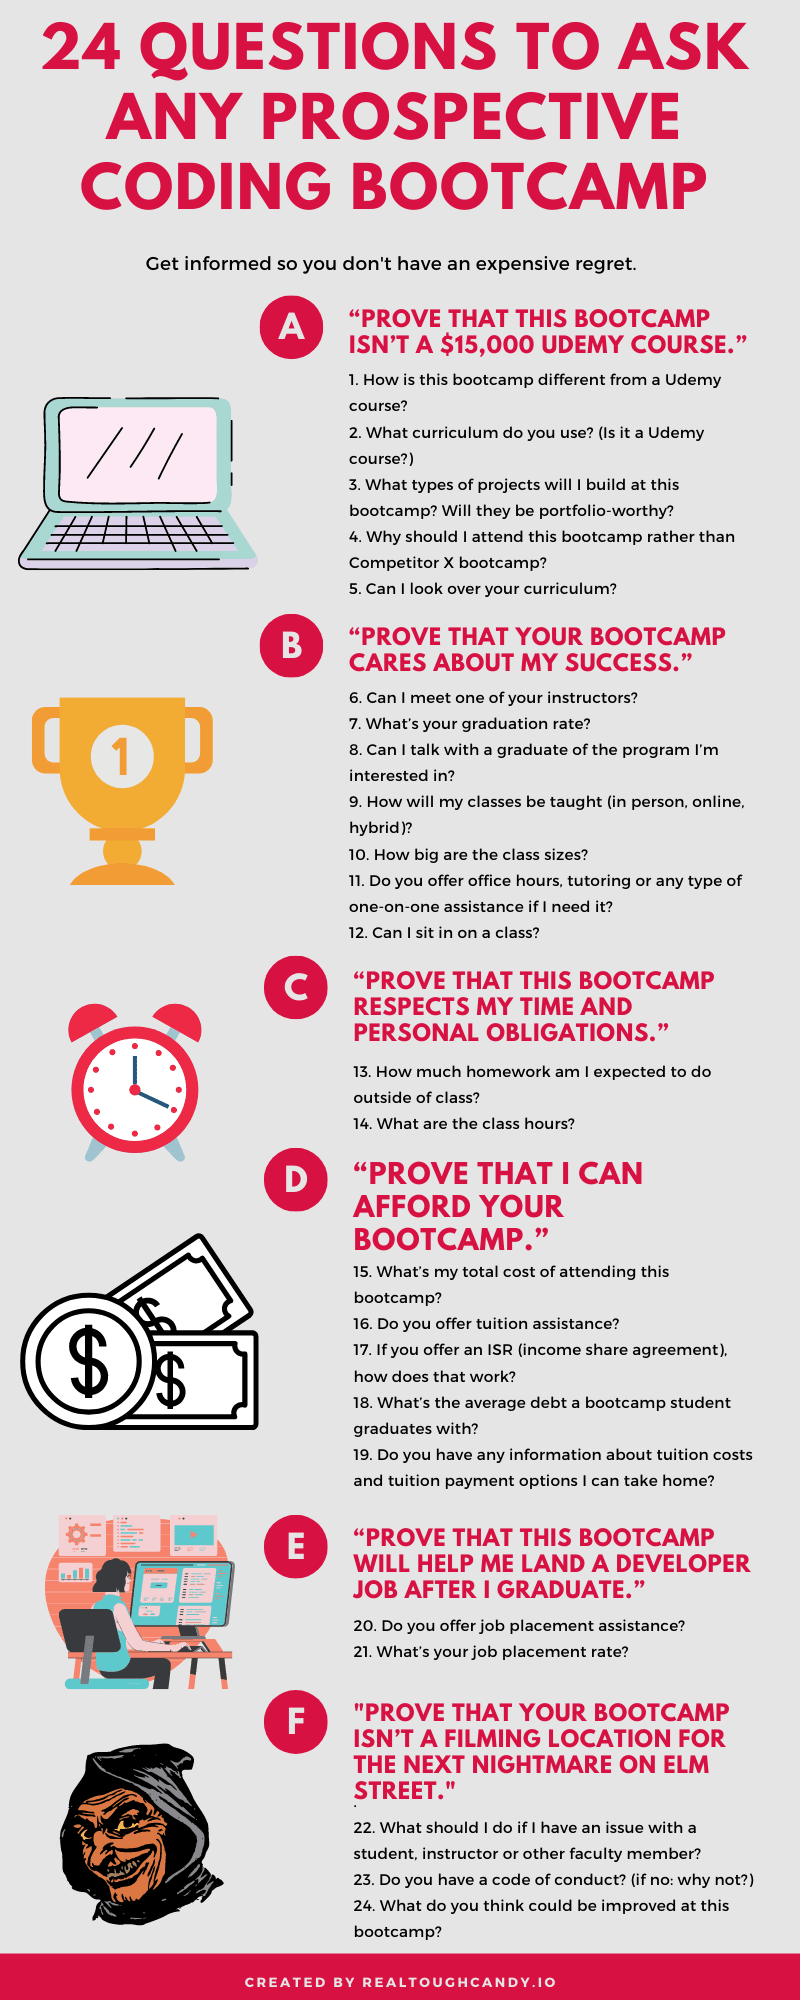 24 Questions to Ask Any Prospective Coding Bootcamp